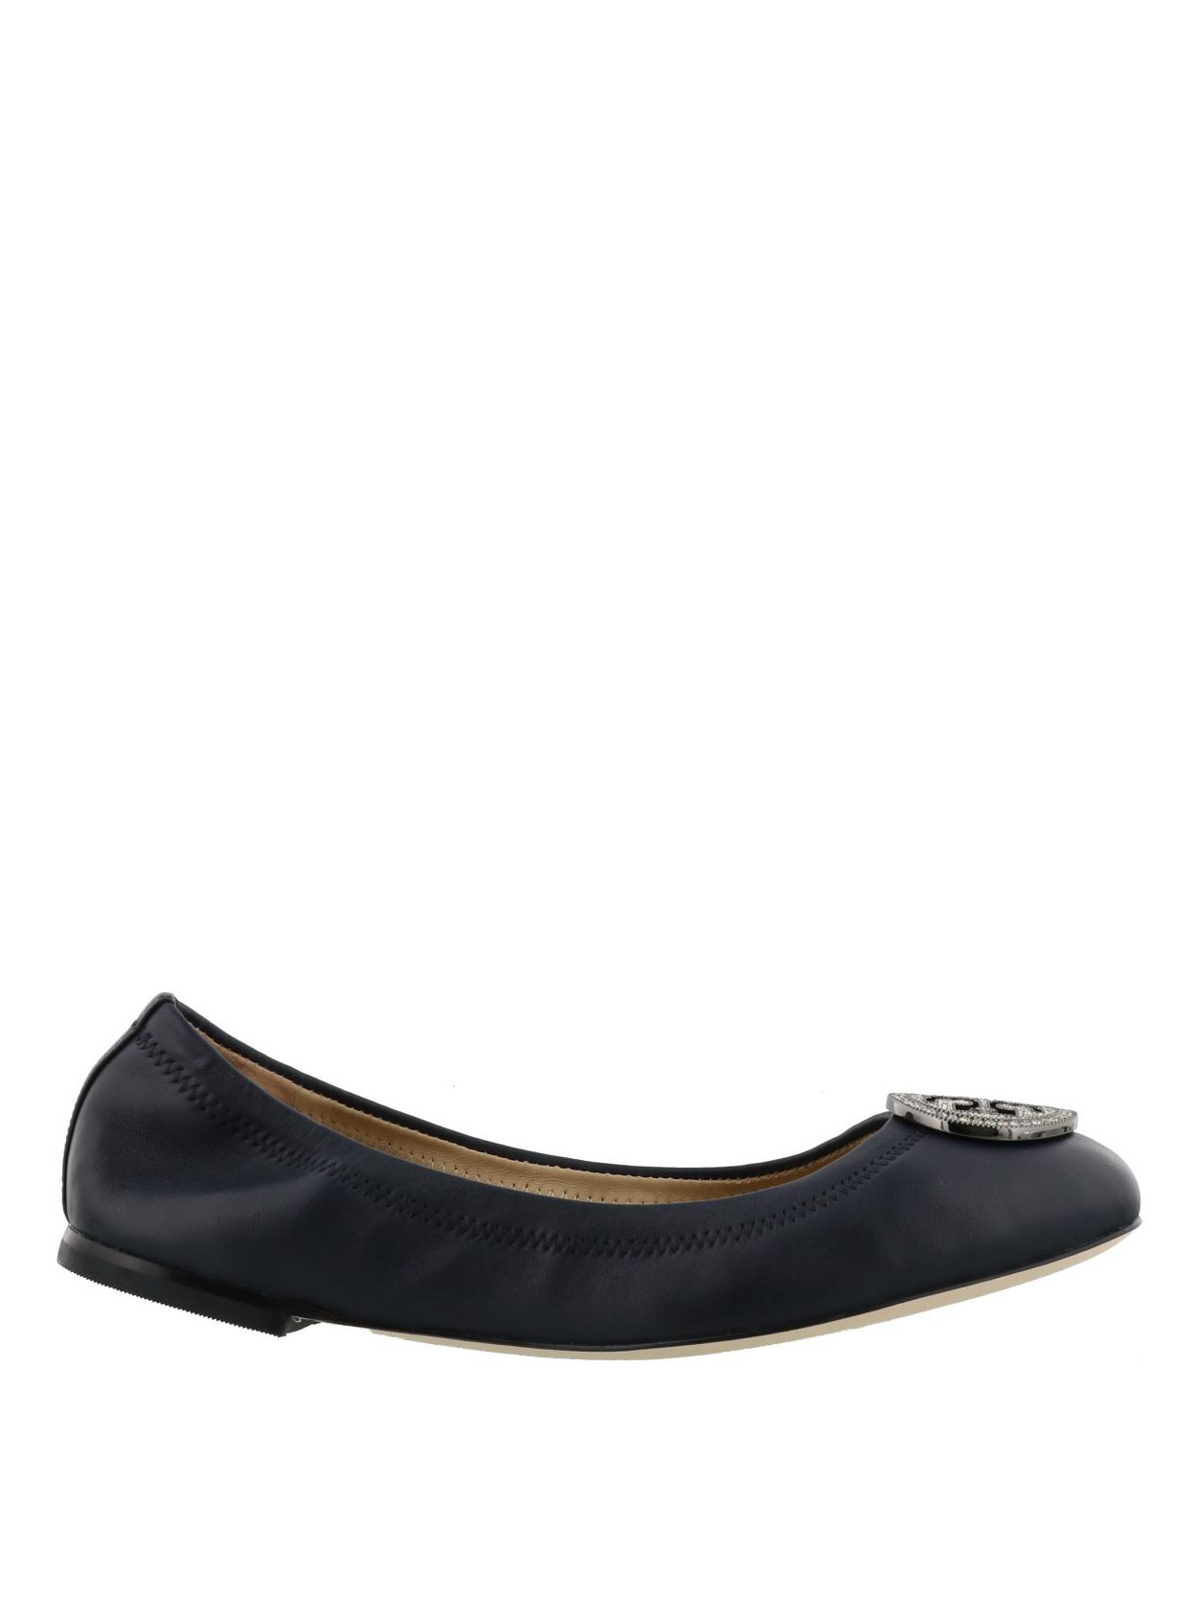 Liana Navy Leather Flat Shoes By Tory Burch - Flat Shoes ...